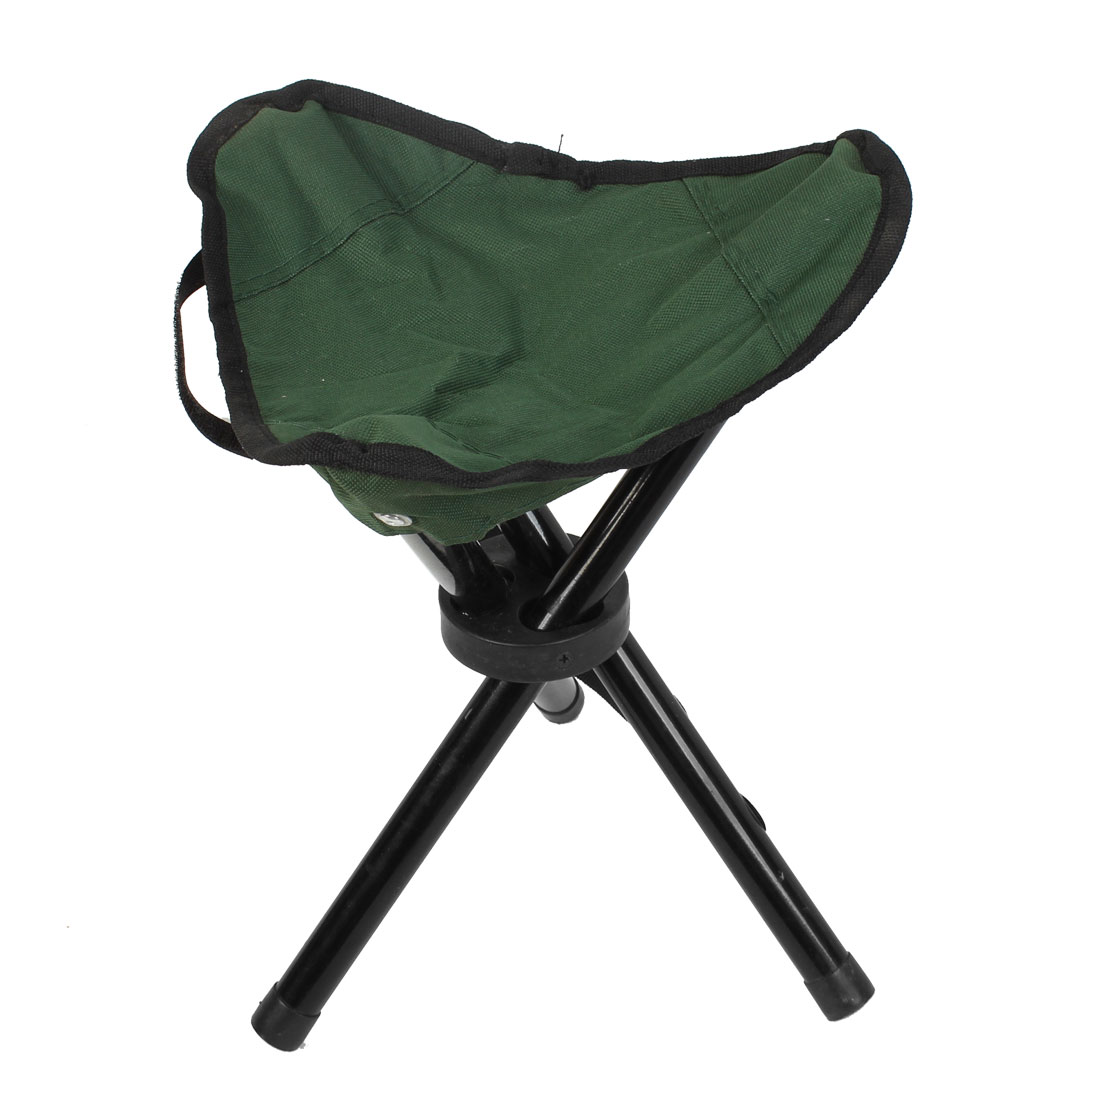 Outdoor Travel Camping Fishing Folding Tripod Stool Chair Seat Army Green